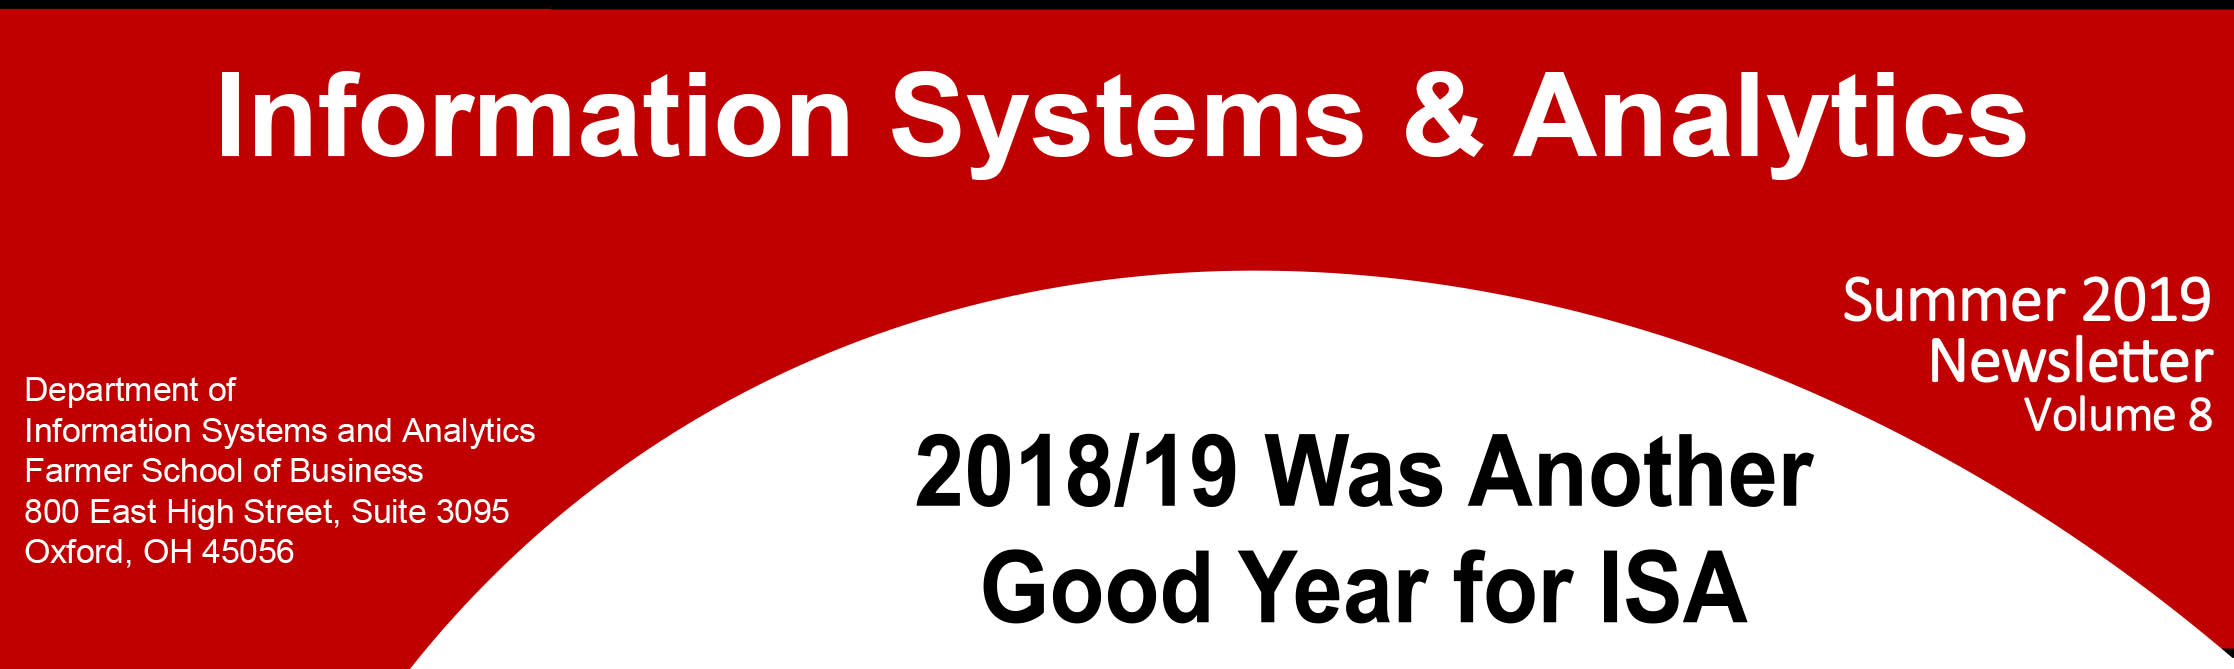 ISA Newsletter 2018 - Information Systems and Analytics News. Summer 2018 issue - The Year in Review, Additional Highlights and Faculty News, More Details, and Student Recognition and Giving Back